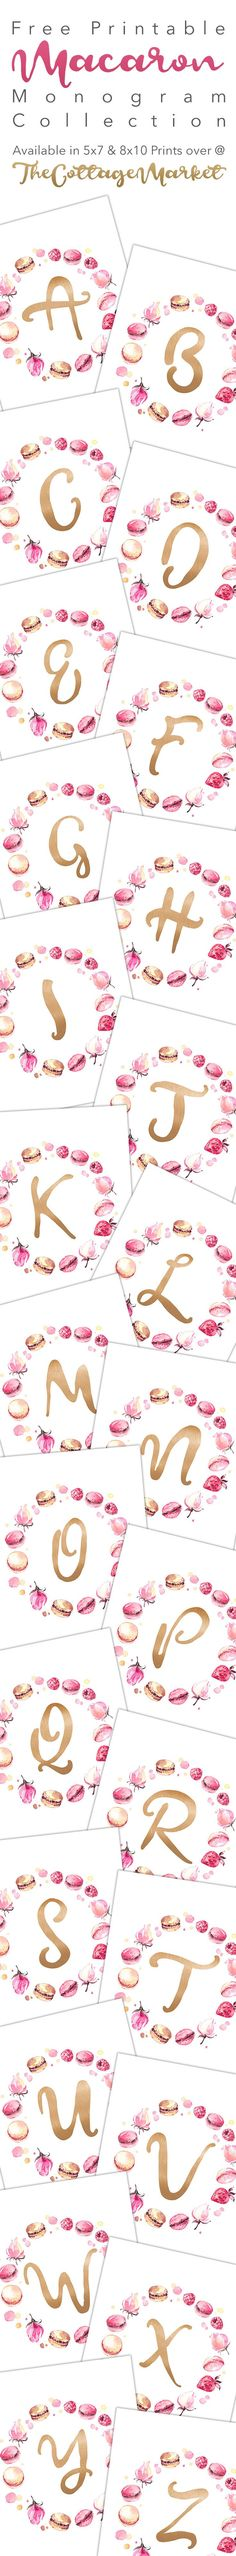 Free Printable Macaron Monogram Collection